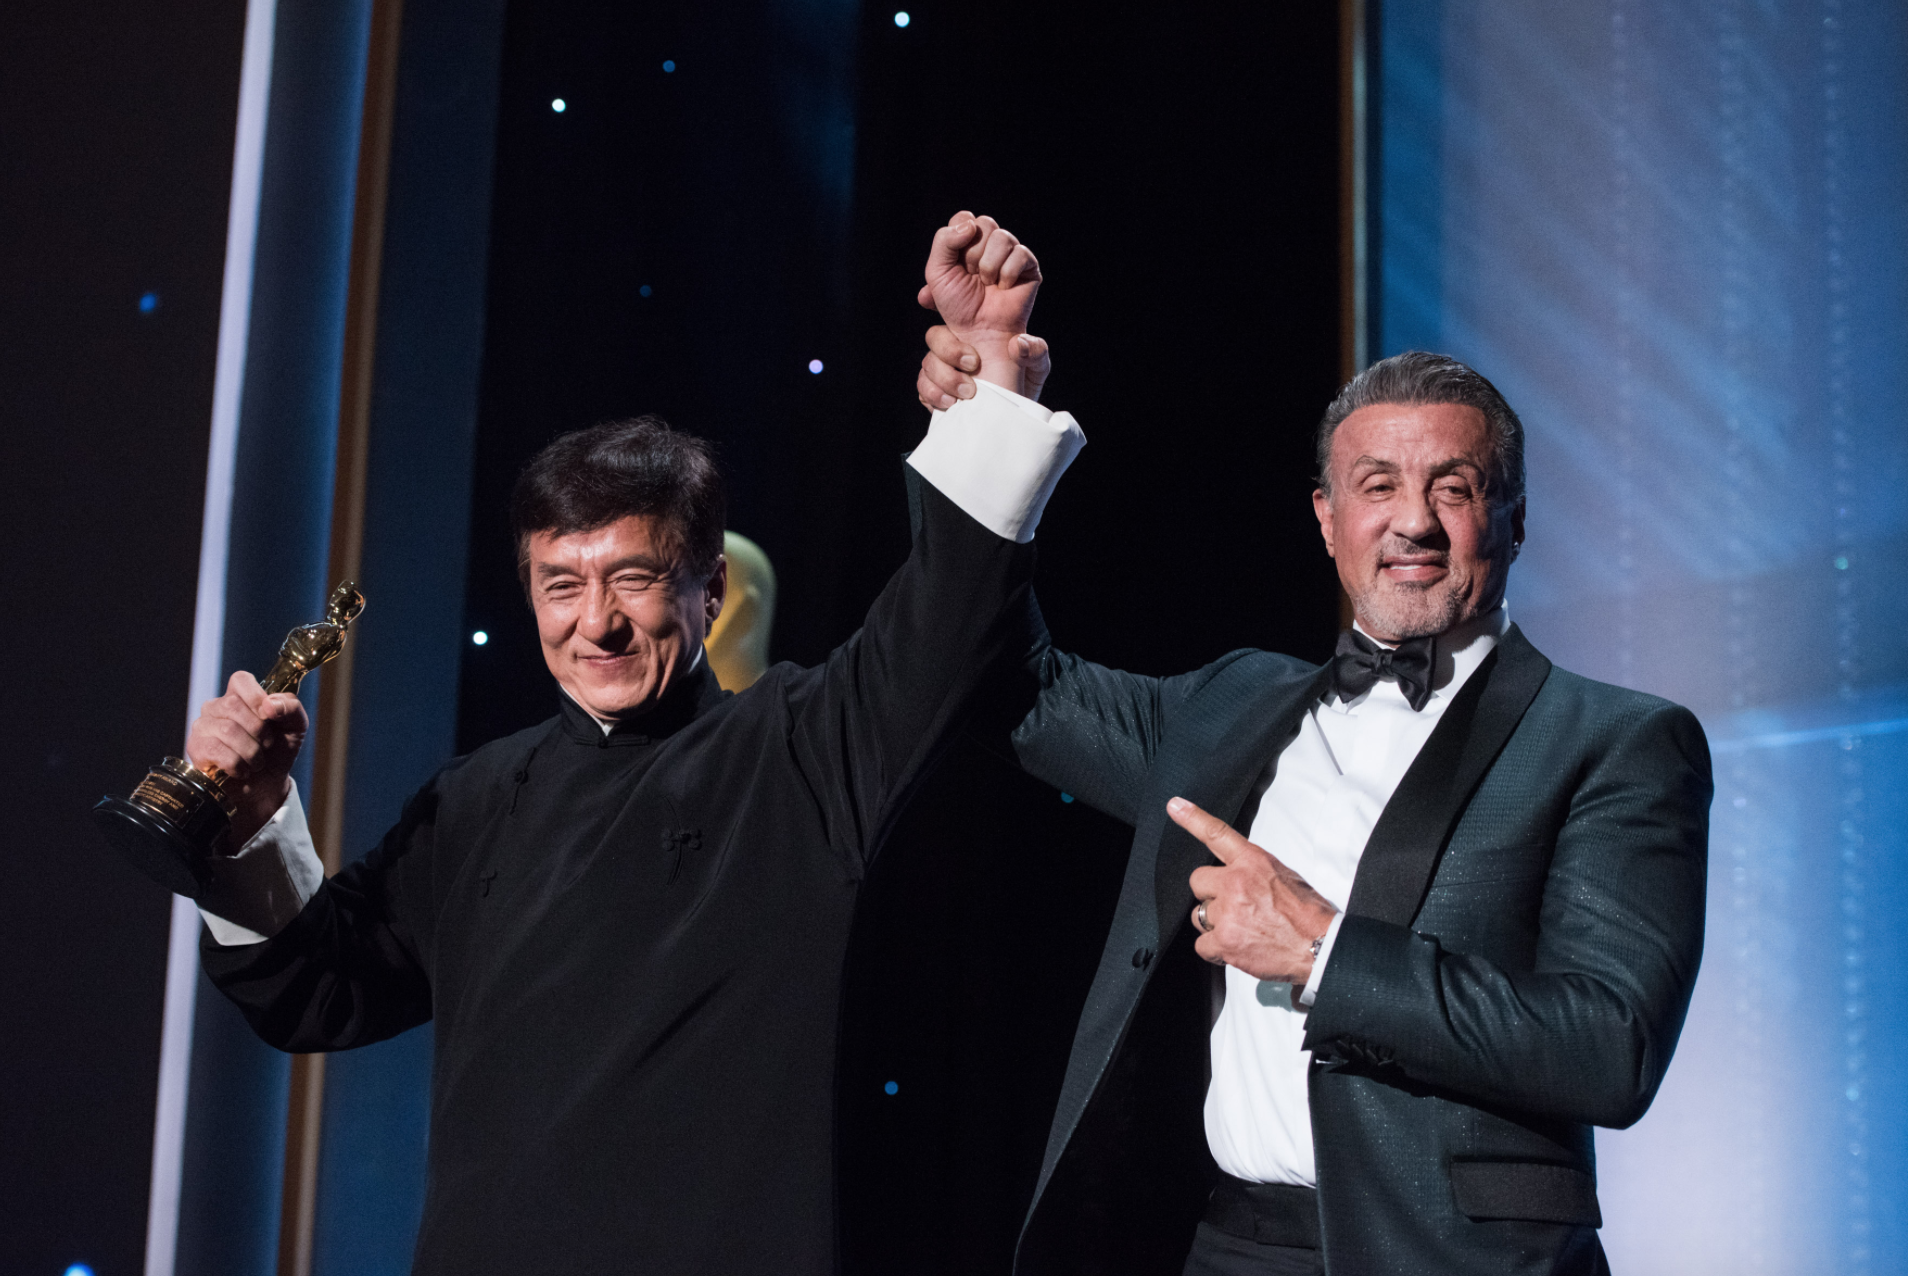 Sly Stallone Governors Awards